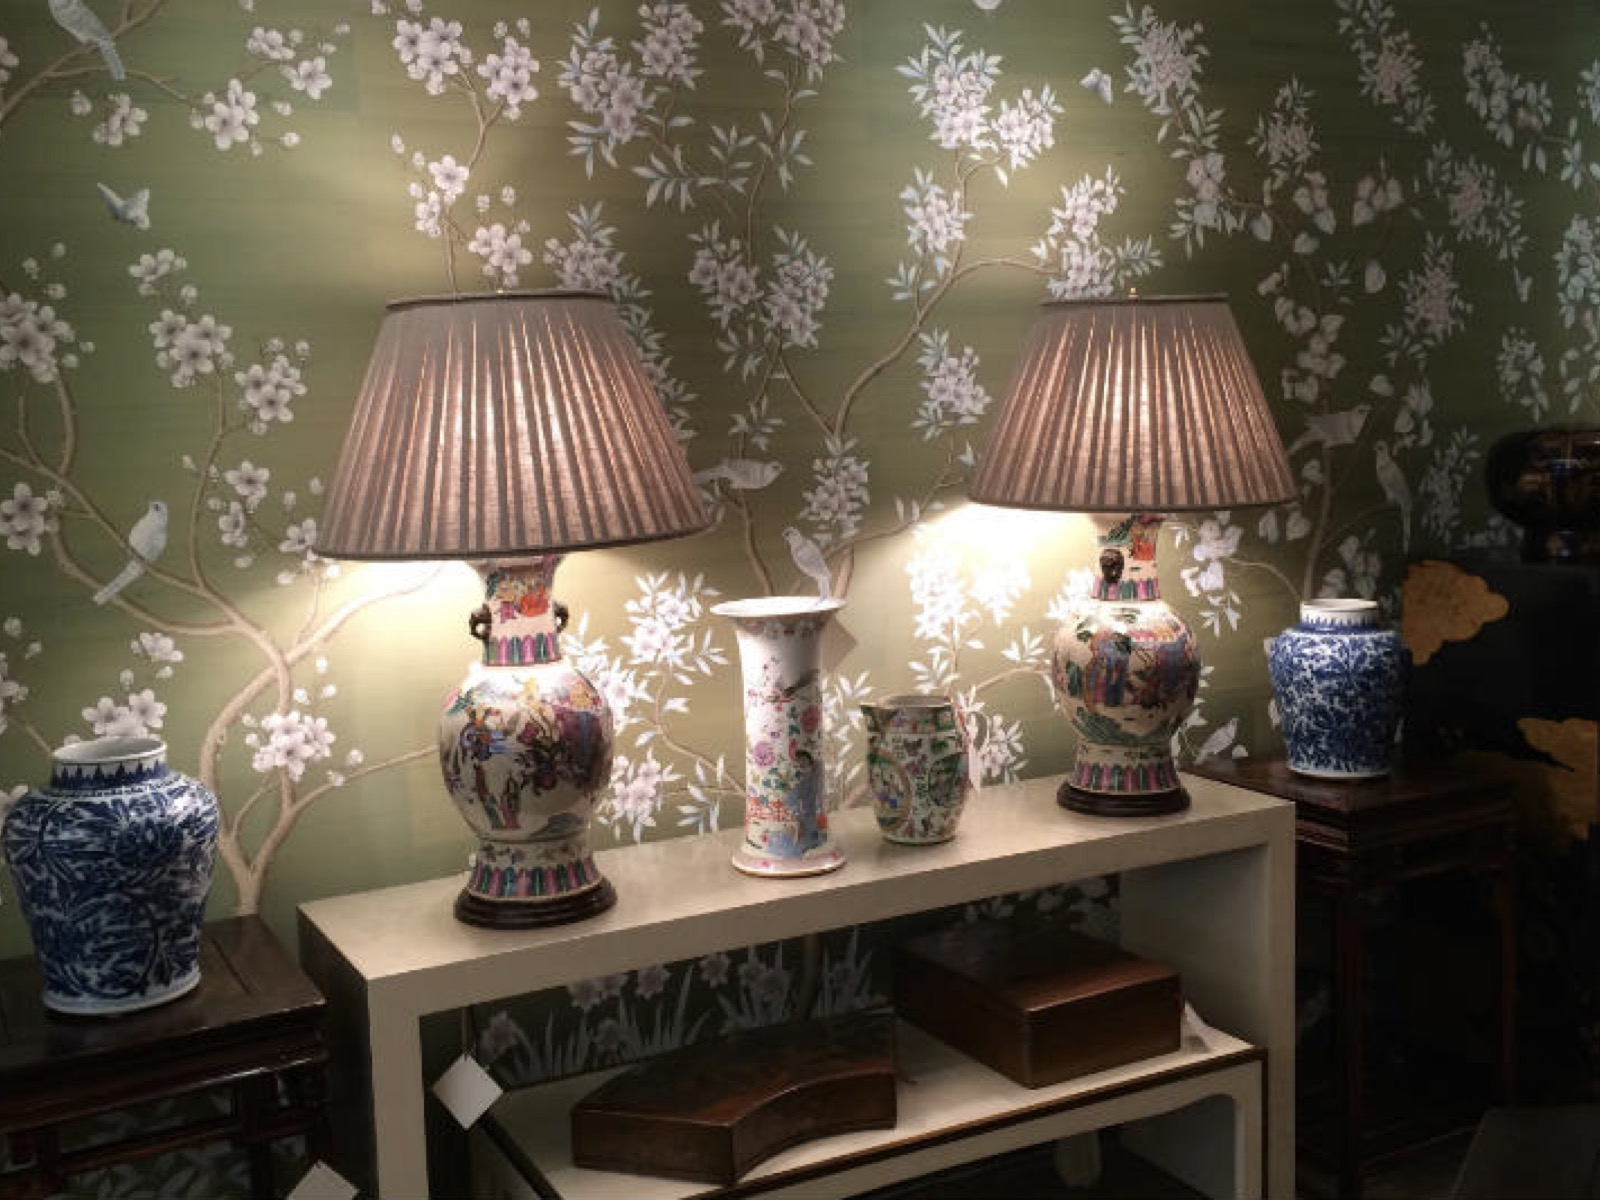 Interior Design Ideas - Fabrics & Wallpaper - Leigh Woollatt